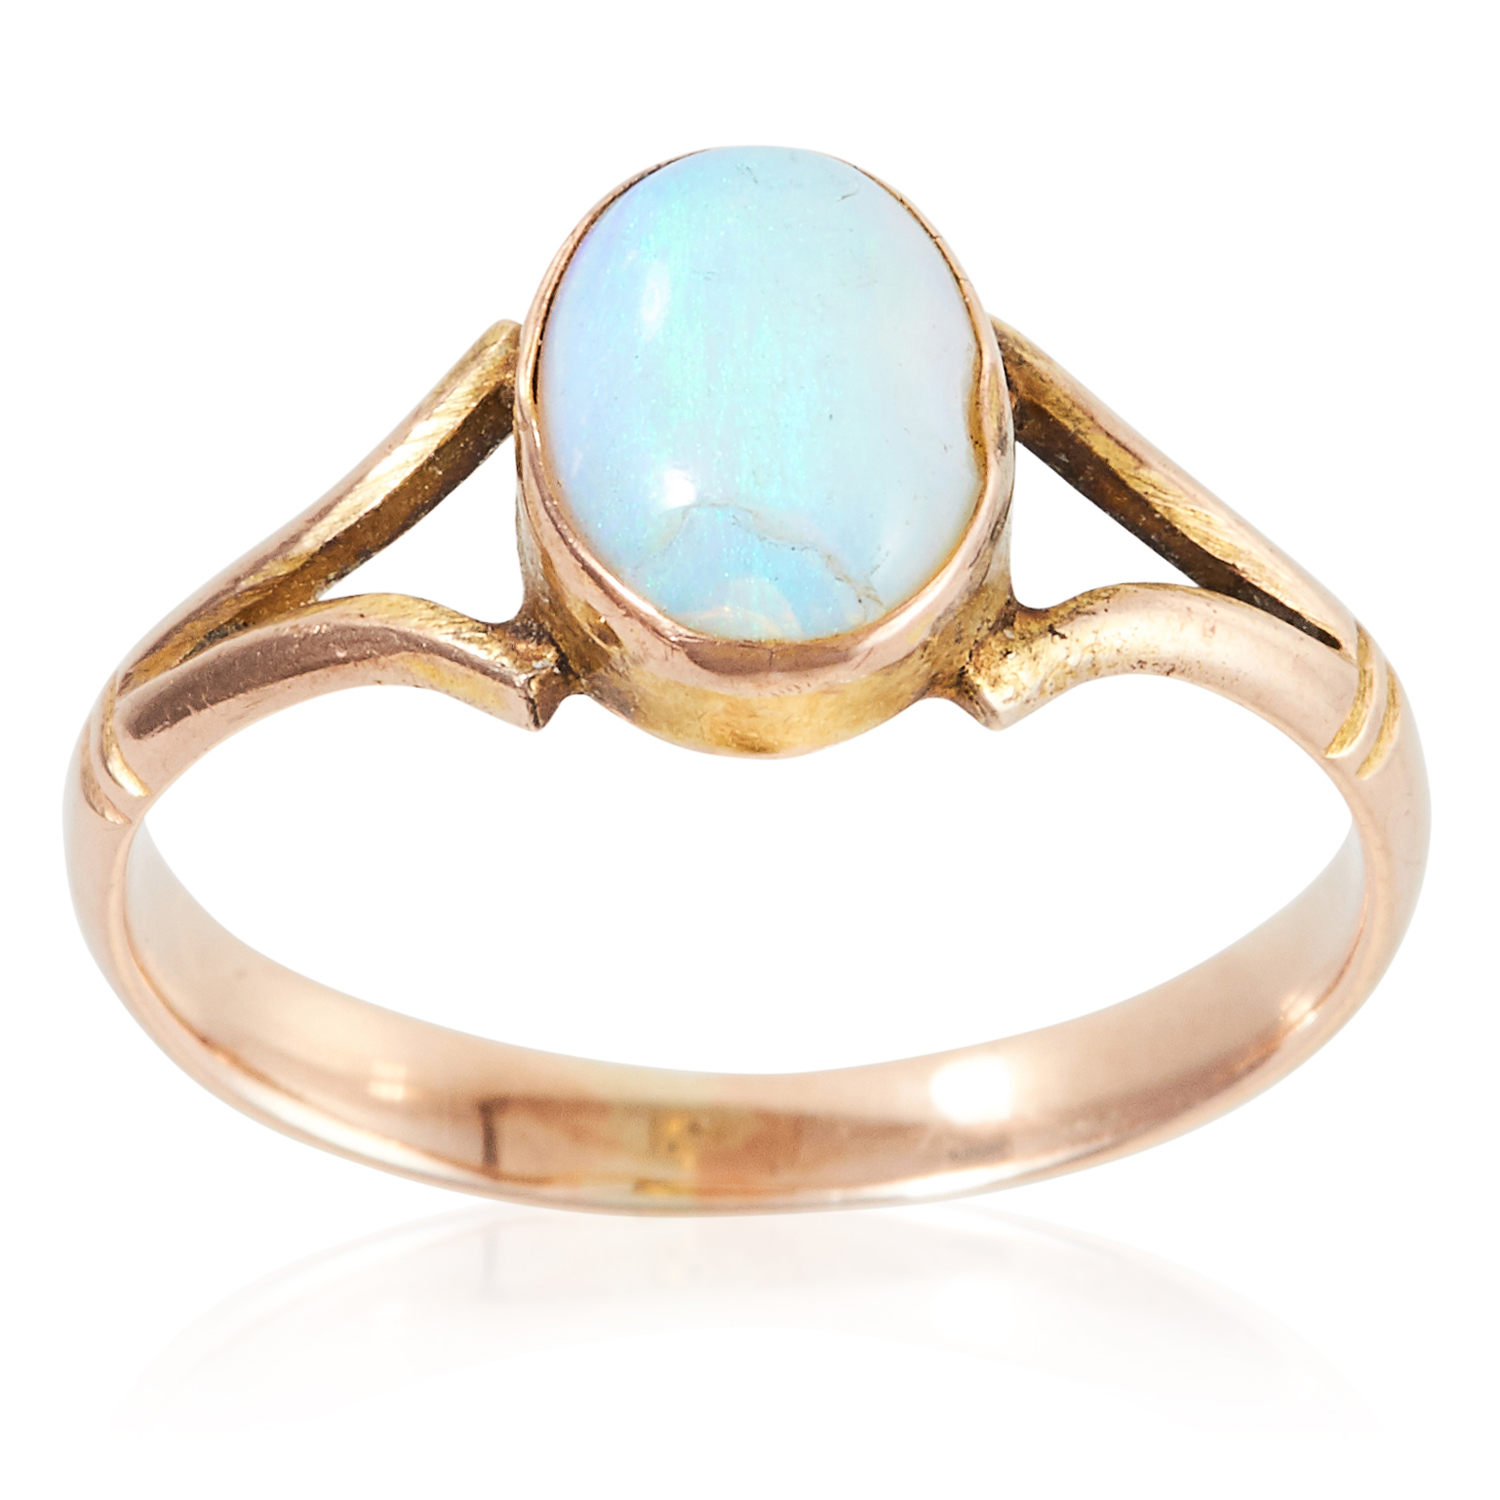 Los 45 - AN OPAL DRESS RING in yellow gold, set with an oval cabochon opal to a bifurcated band, unmarked,